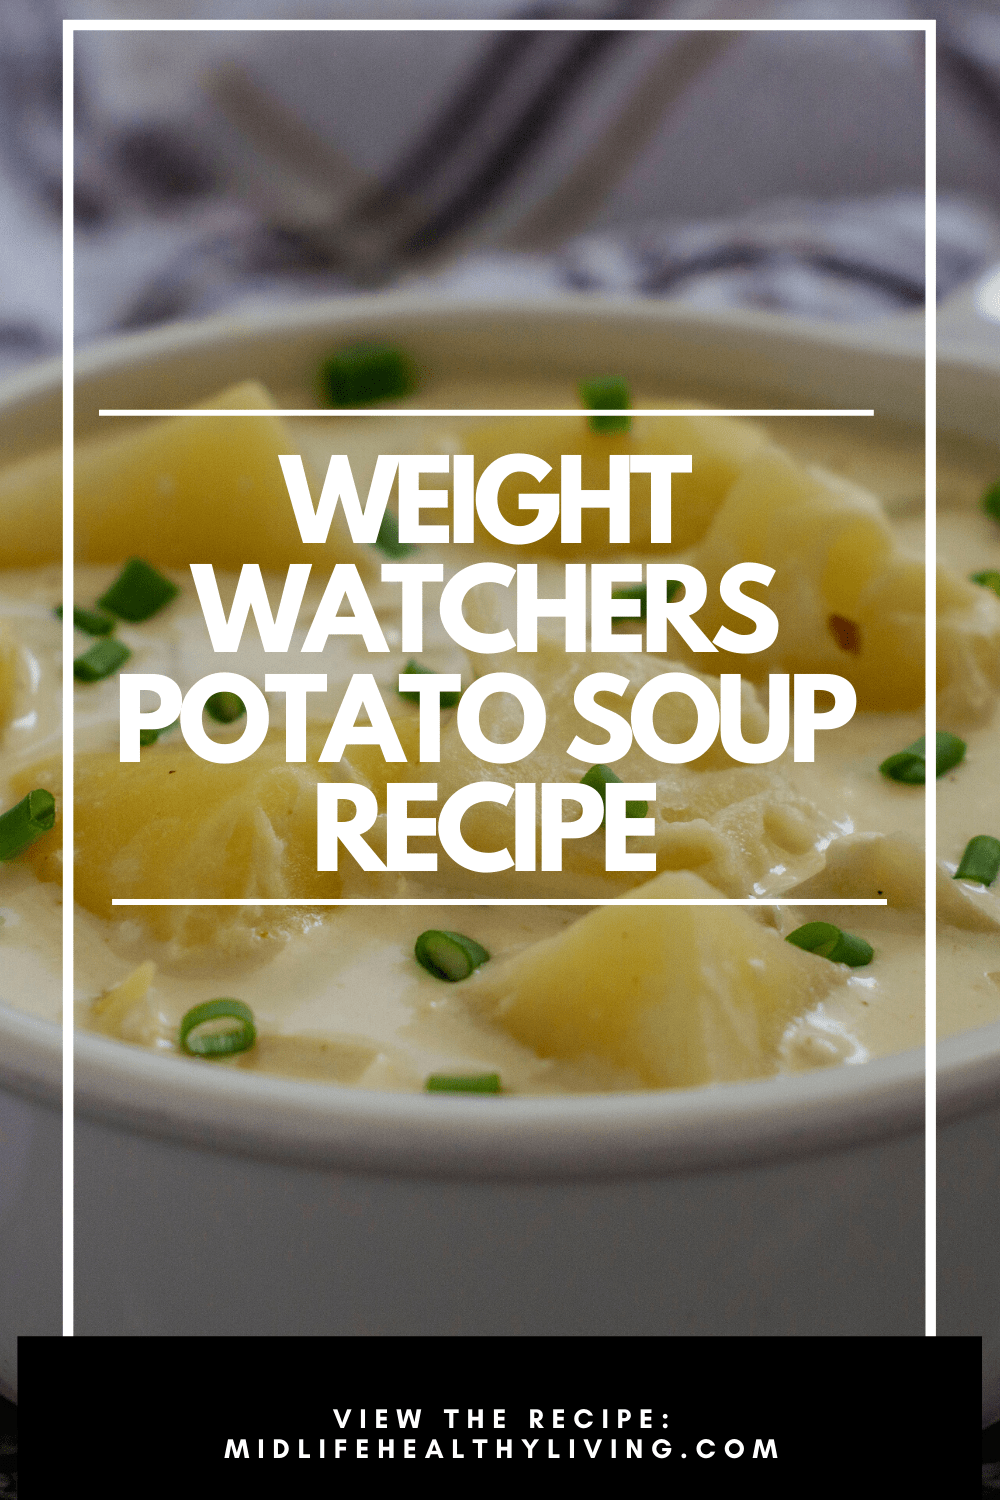 A pin showing the delicious weight watchers potato soup in the background and the title in the middle.